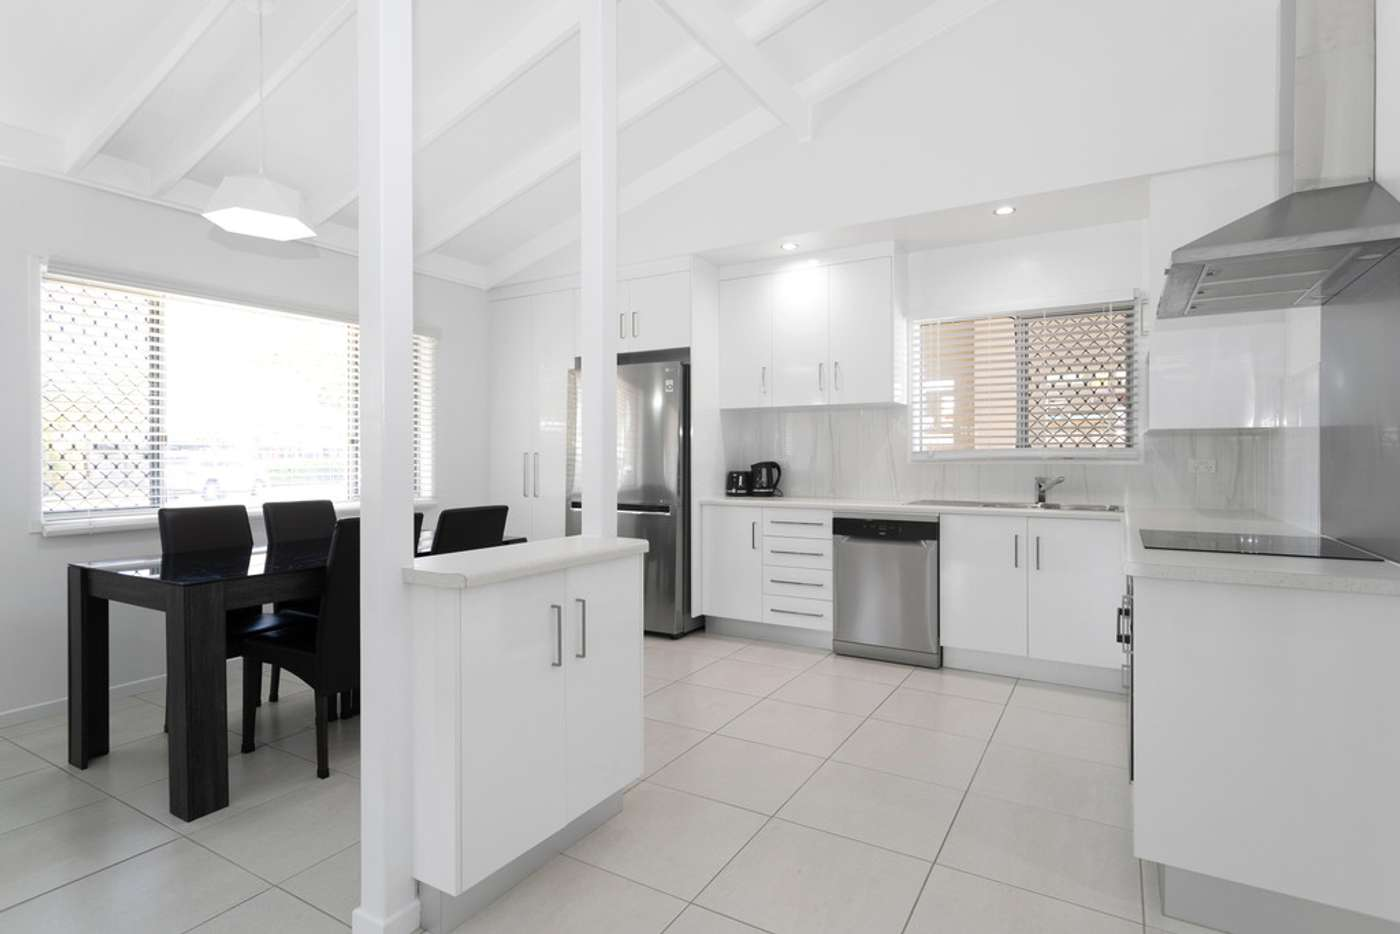 Main view of Homely house listing, 2 Mallett Court, Beaconsfield QLD 4740